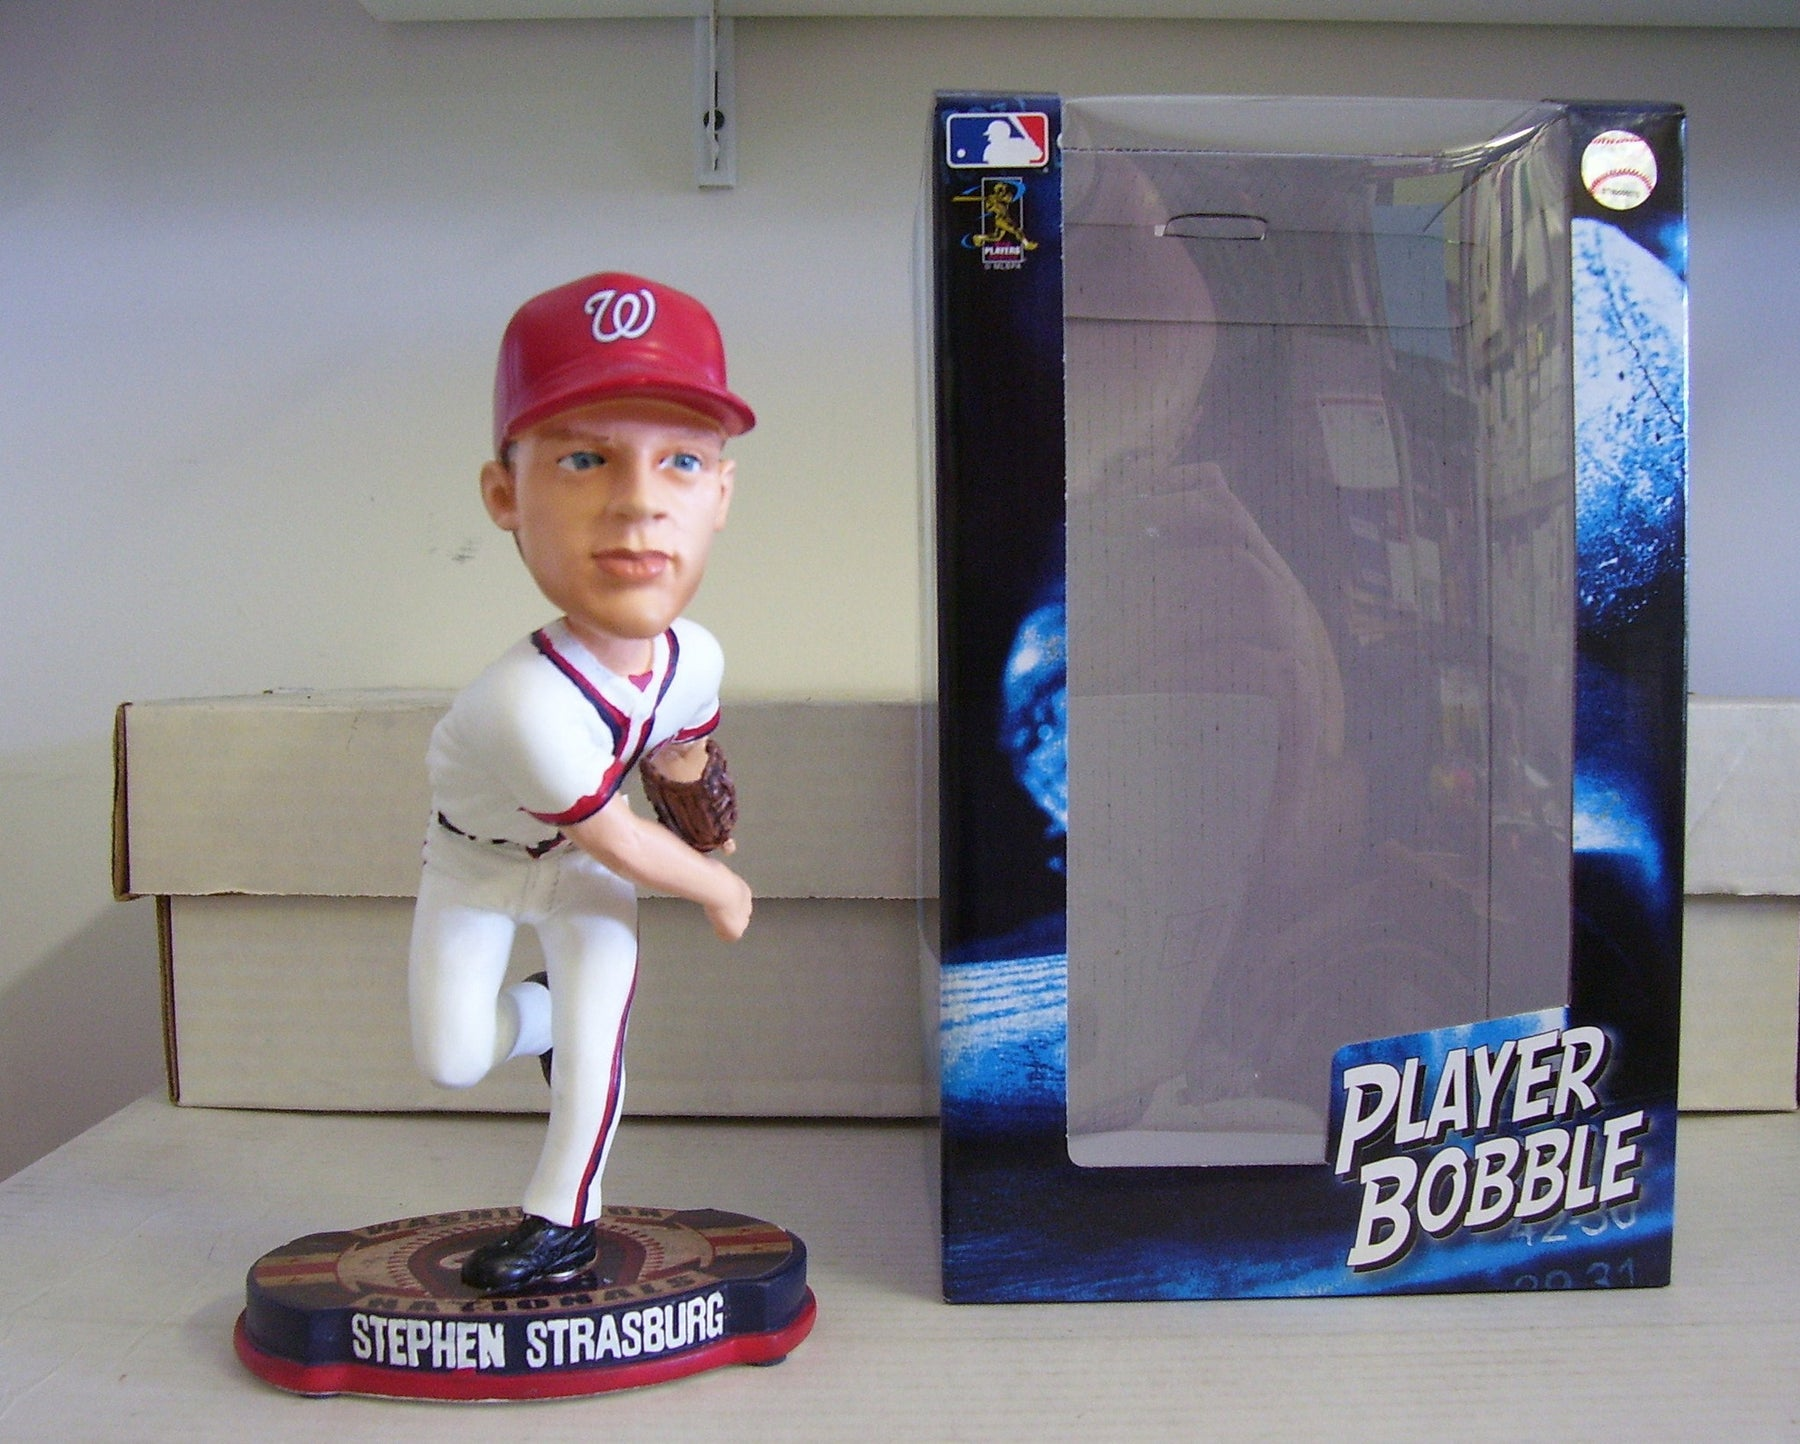 Stephen Strasburg and Bryce Harper Bobblehead - BobblesGalore